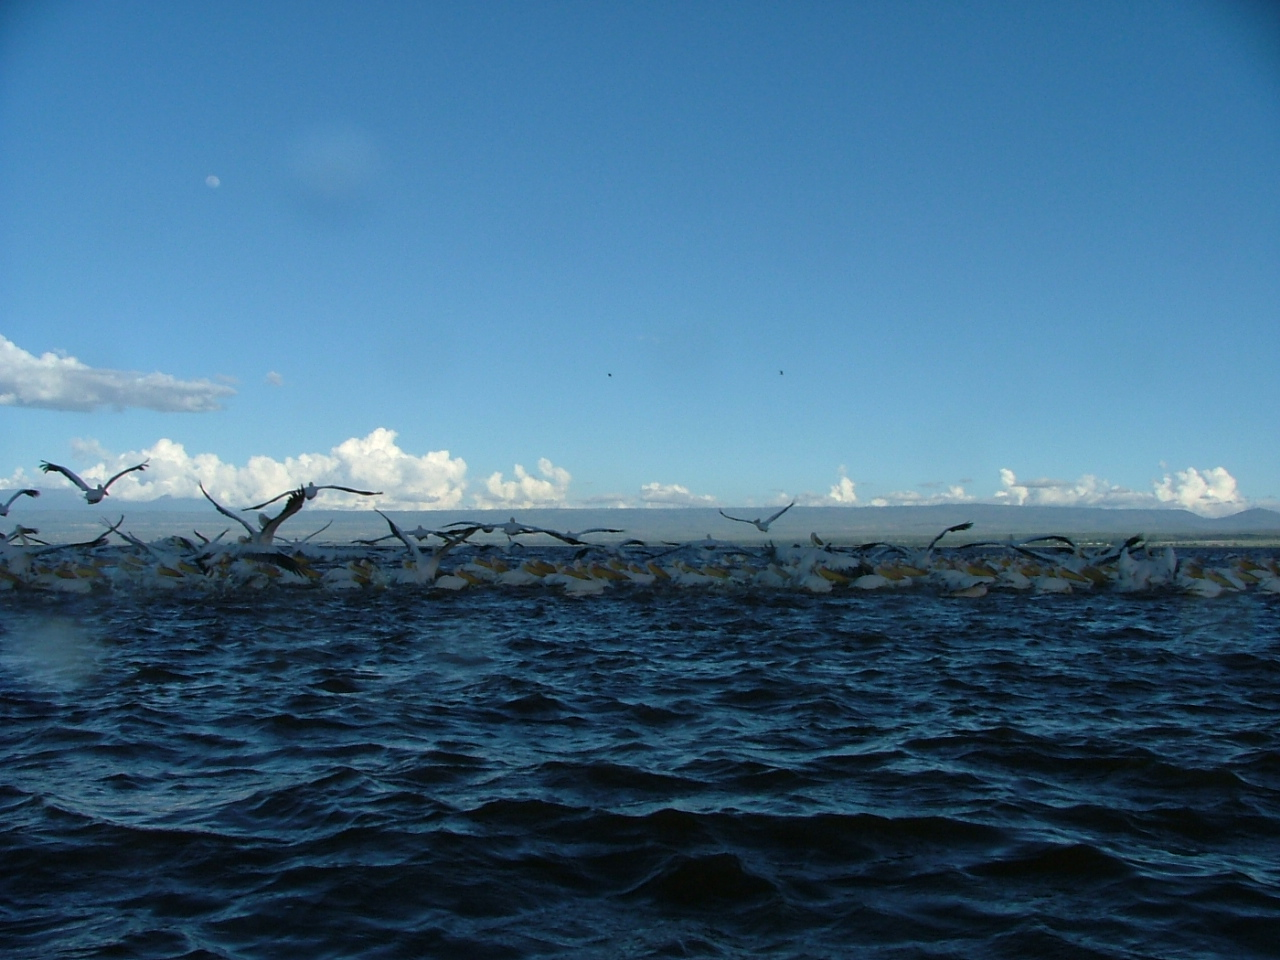 Taken from a boatride in Lake Naivasha in Kenya